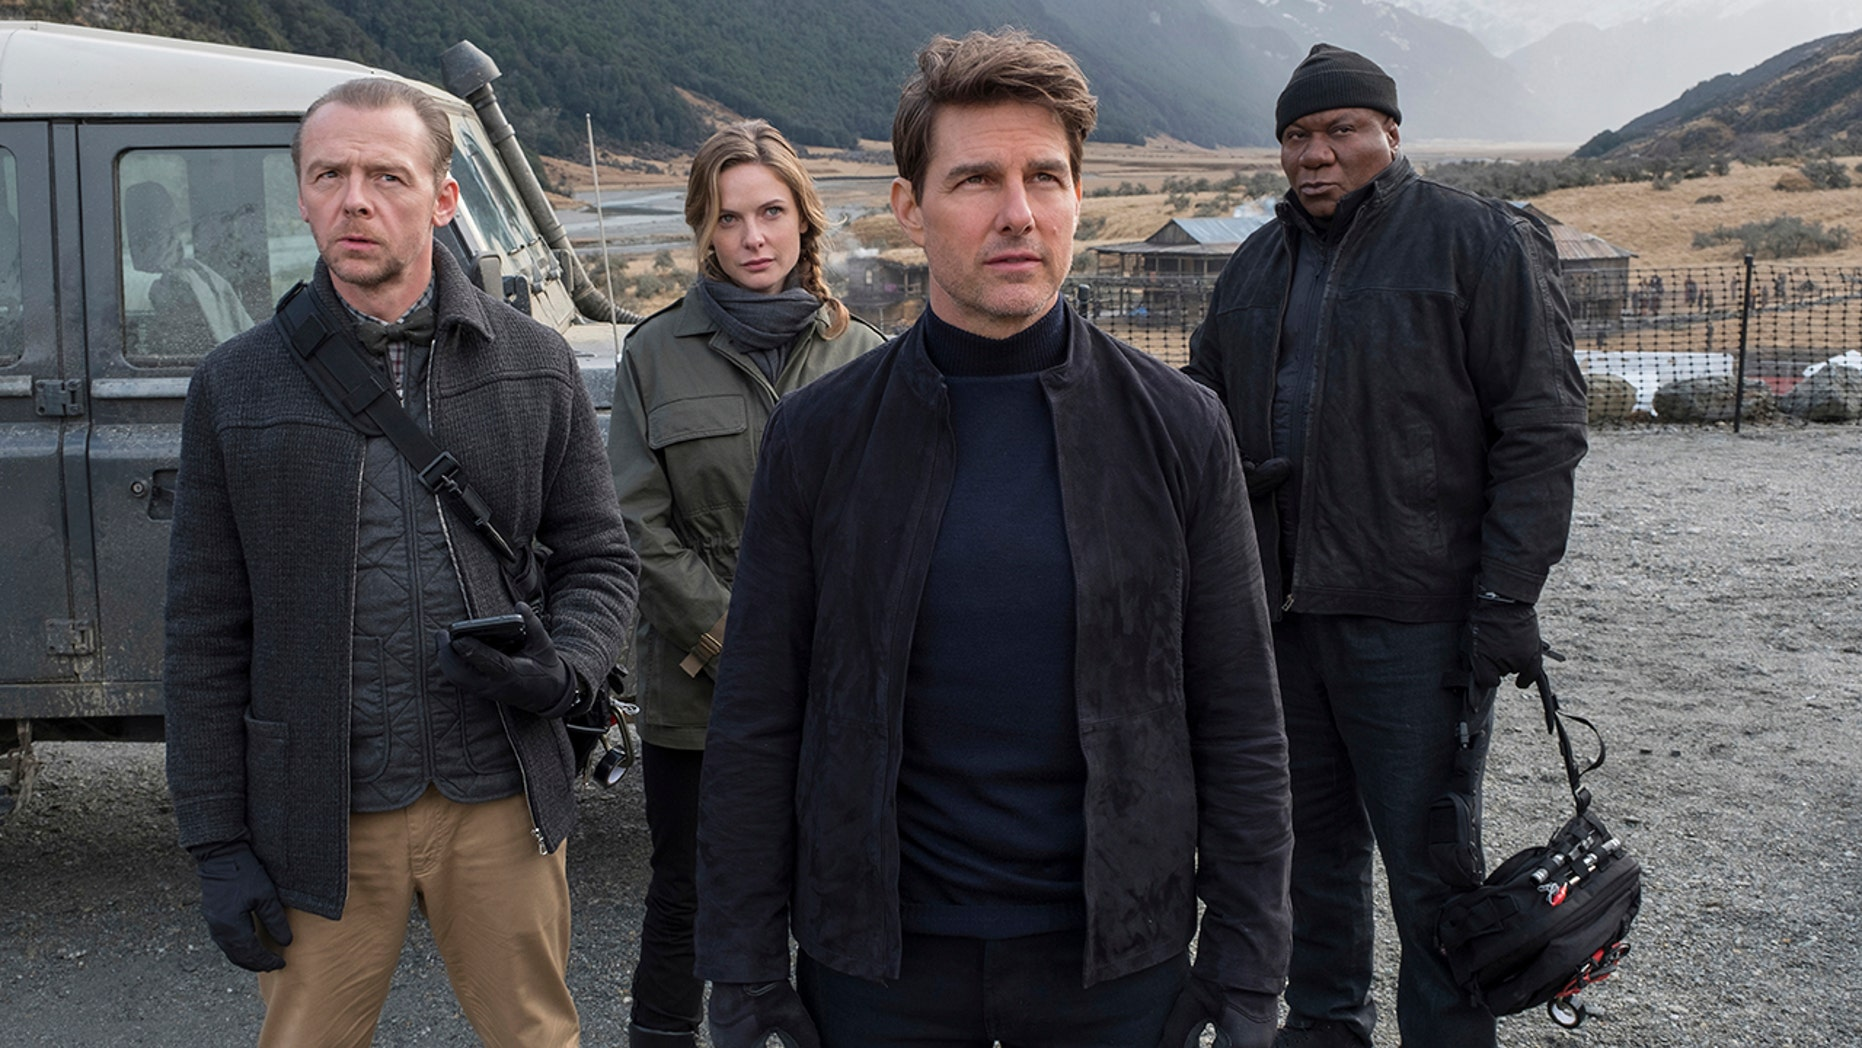 Two New 'Mission: Impossible' Films Are Tom Cruisin' Into Production Soon